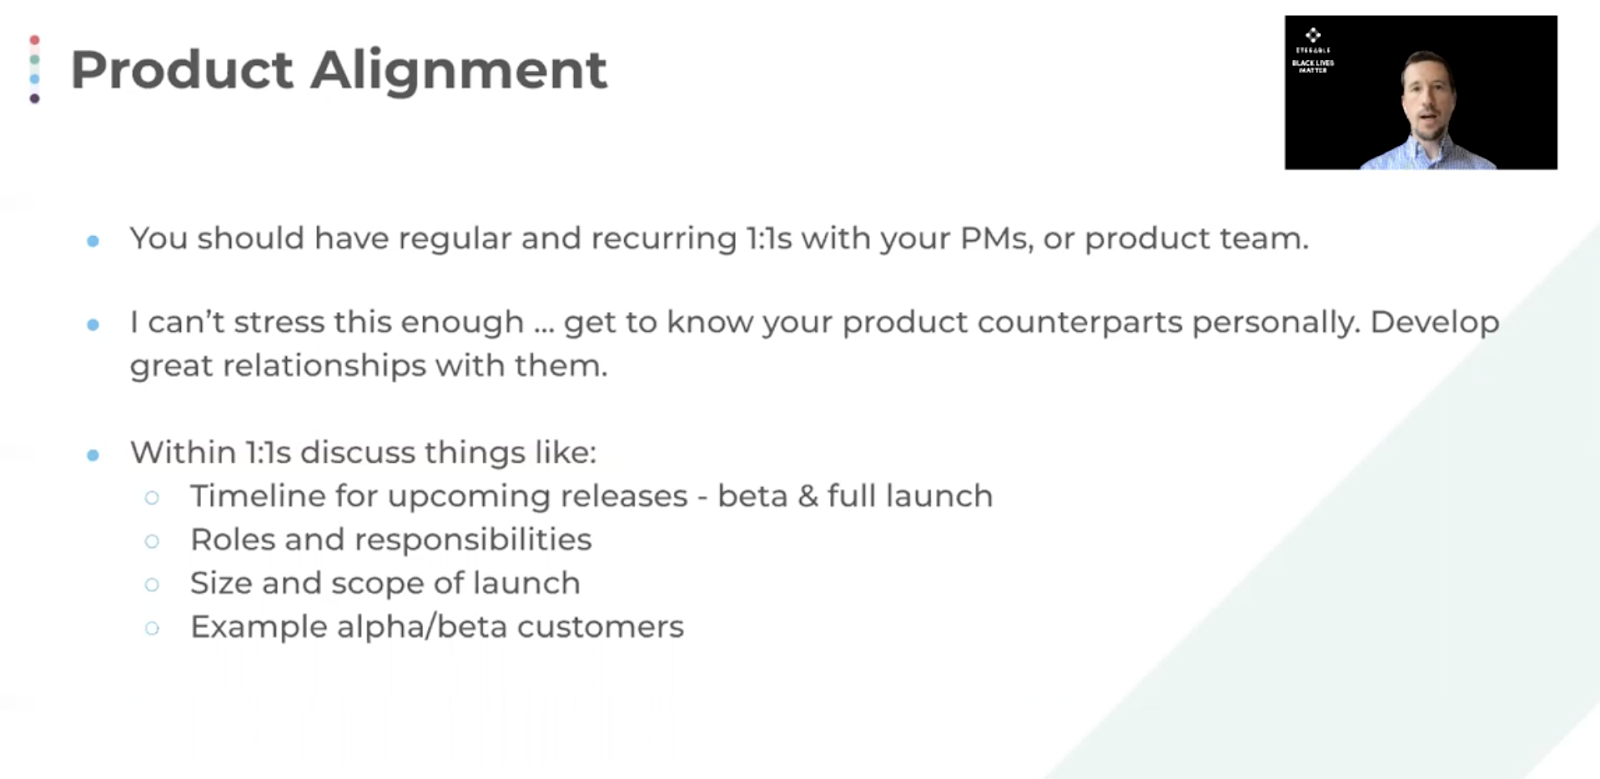 Product alignment is essential. Have meetings with PMs and product teams, get to know your counterparts, and develop relationships.